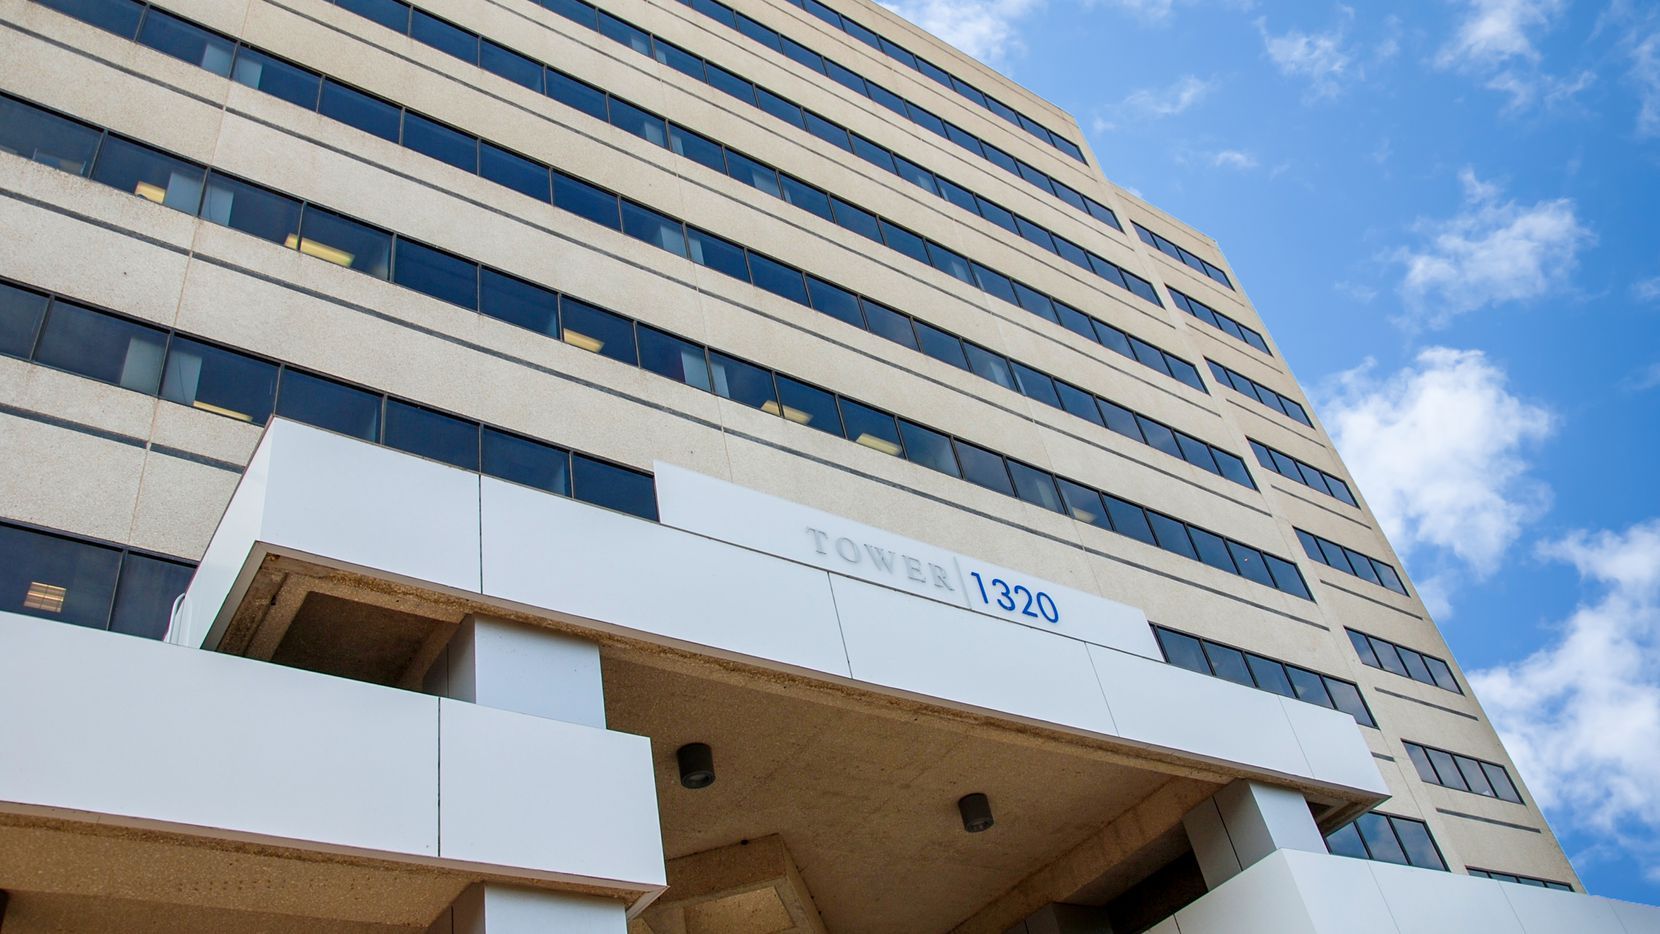 The Tower 1320 sold to Bridge Investment Group.